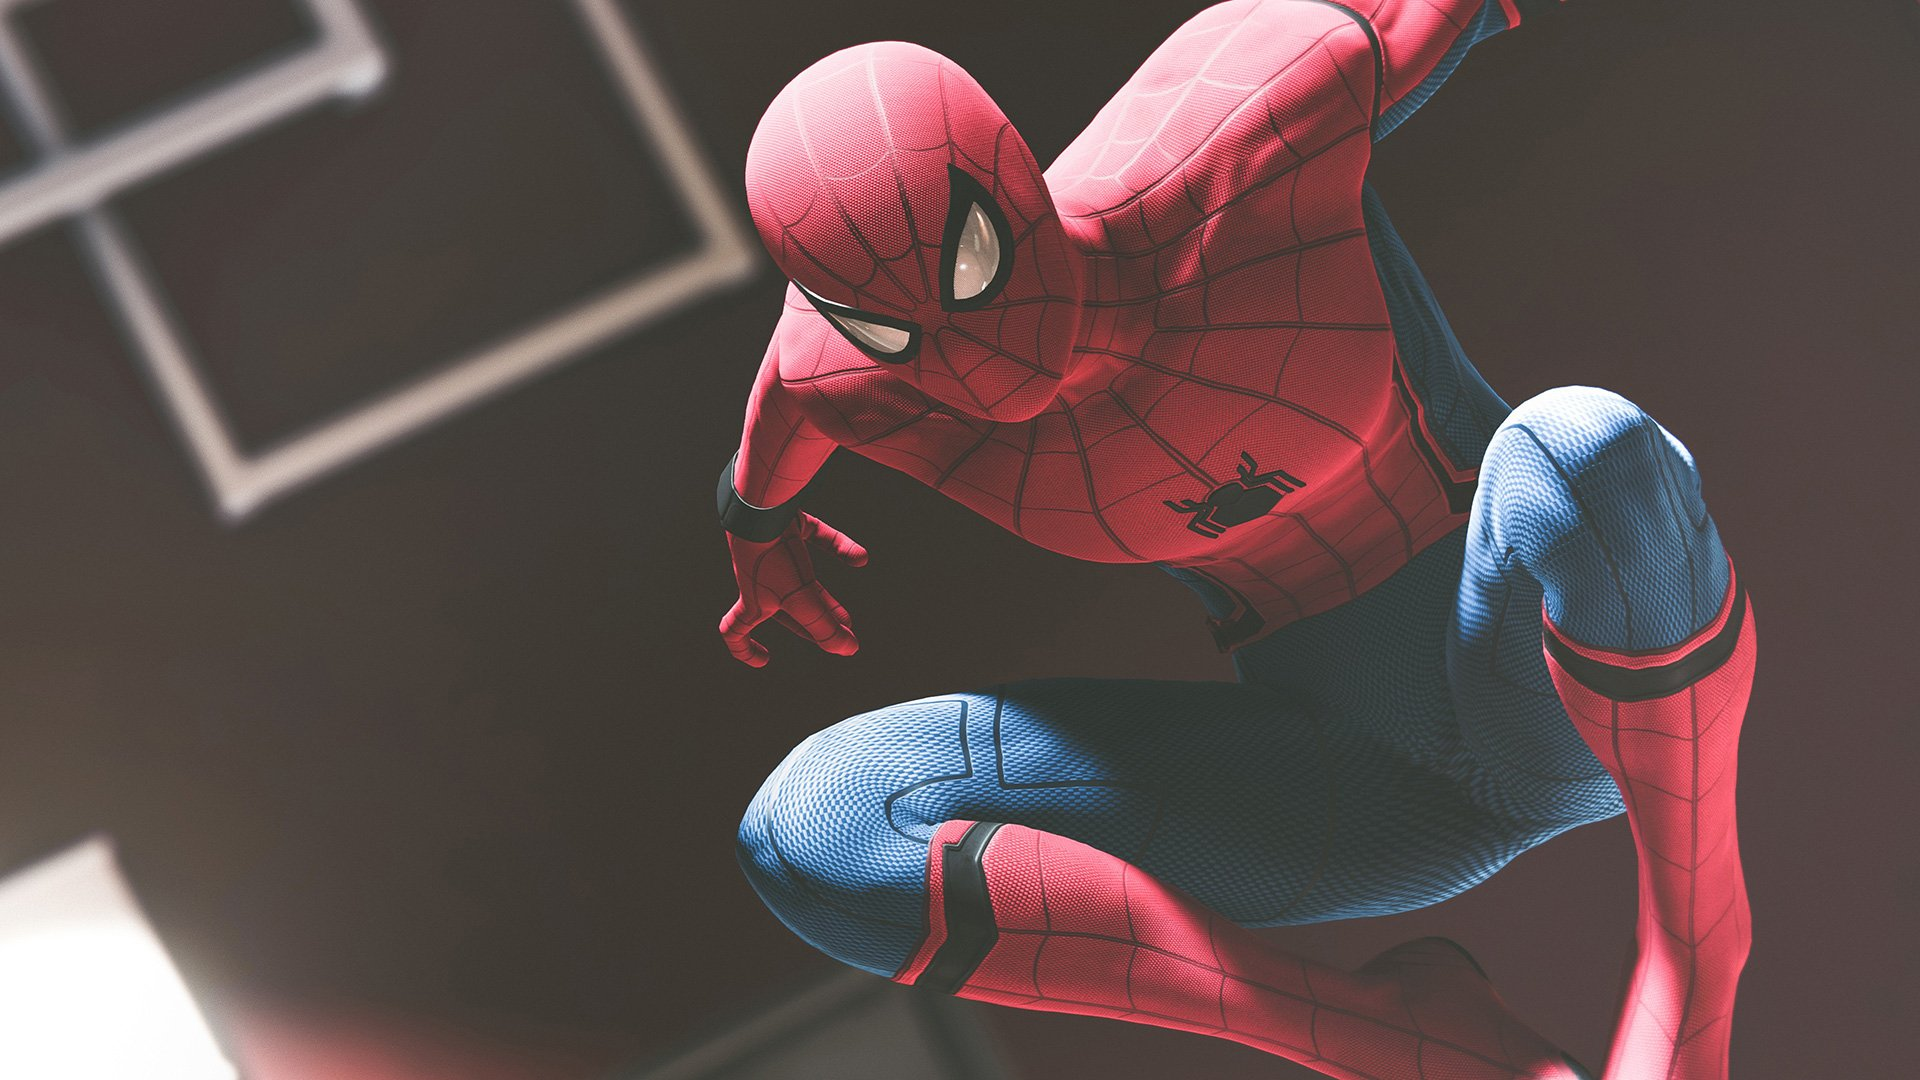 10 Marvel S Spider Man Hd Wallpapers High Quality Background